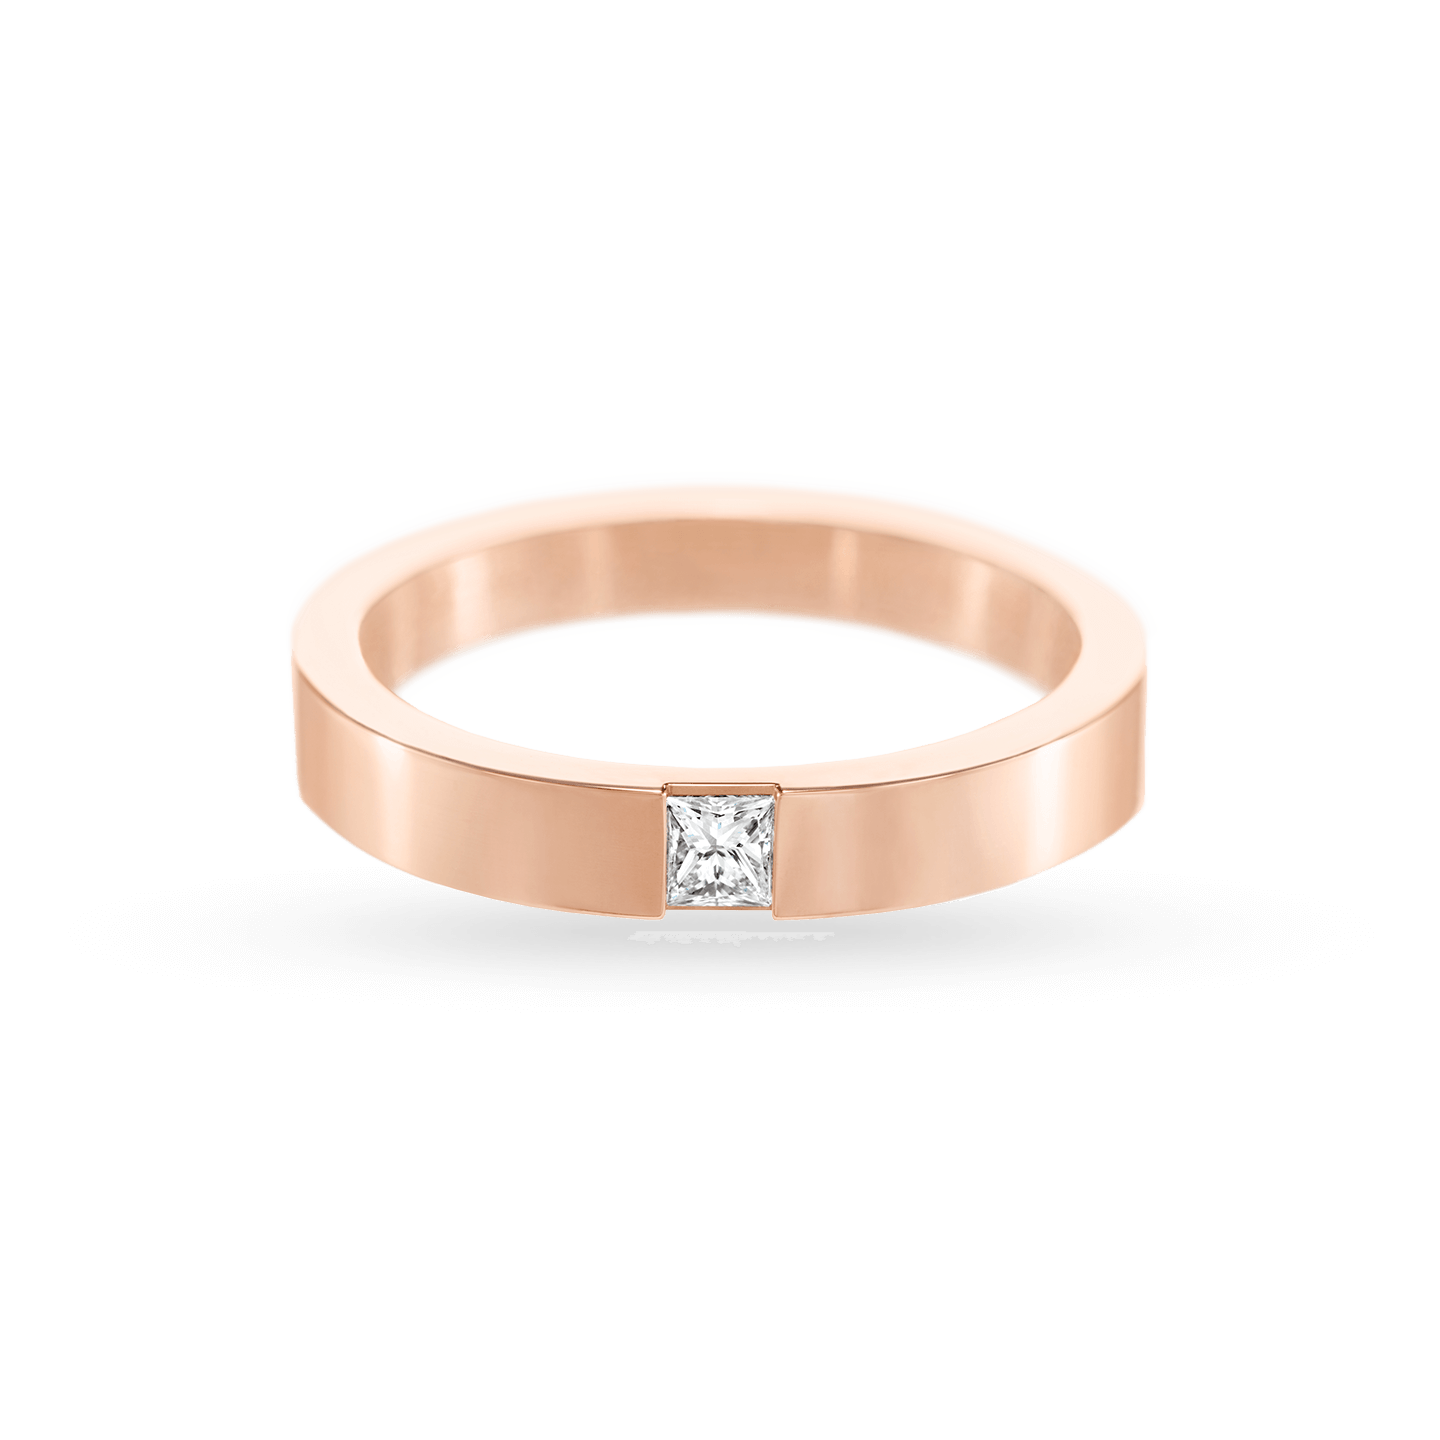 Princess-Cut Single Diamond Wedding Band in Rose Gold, Product Image 2